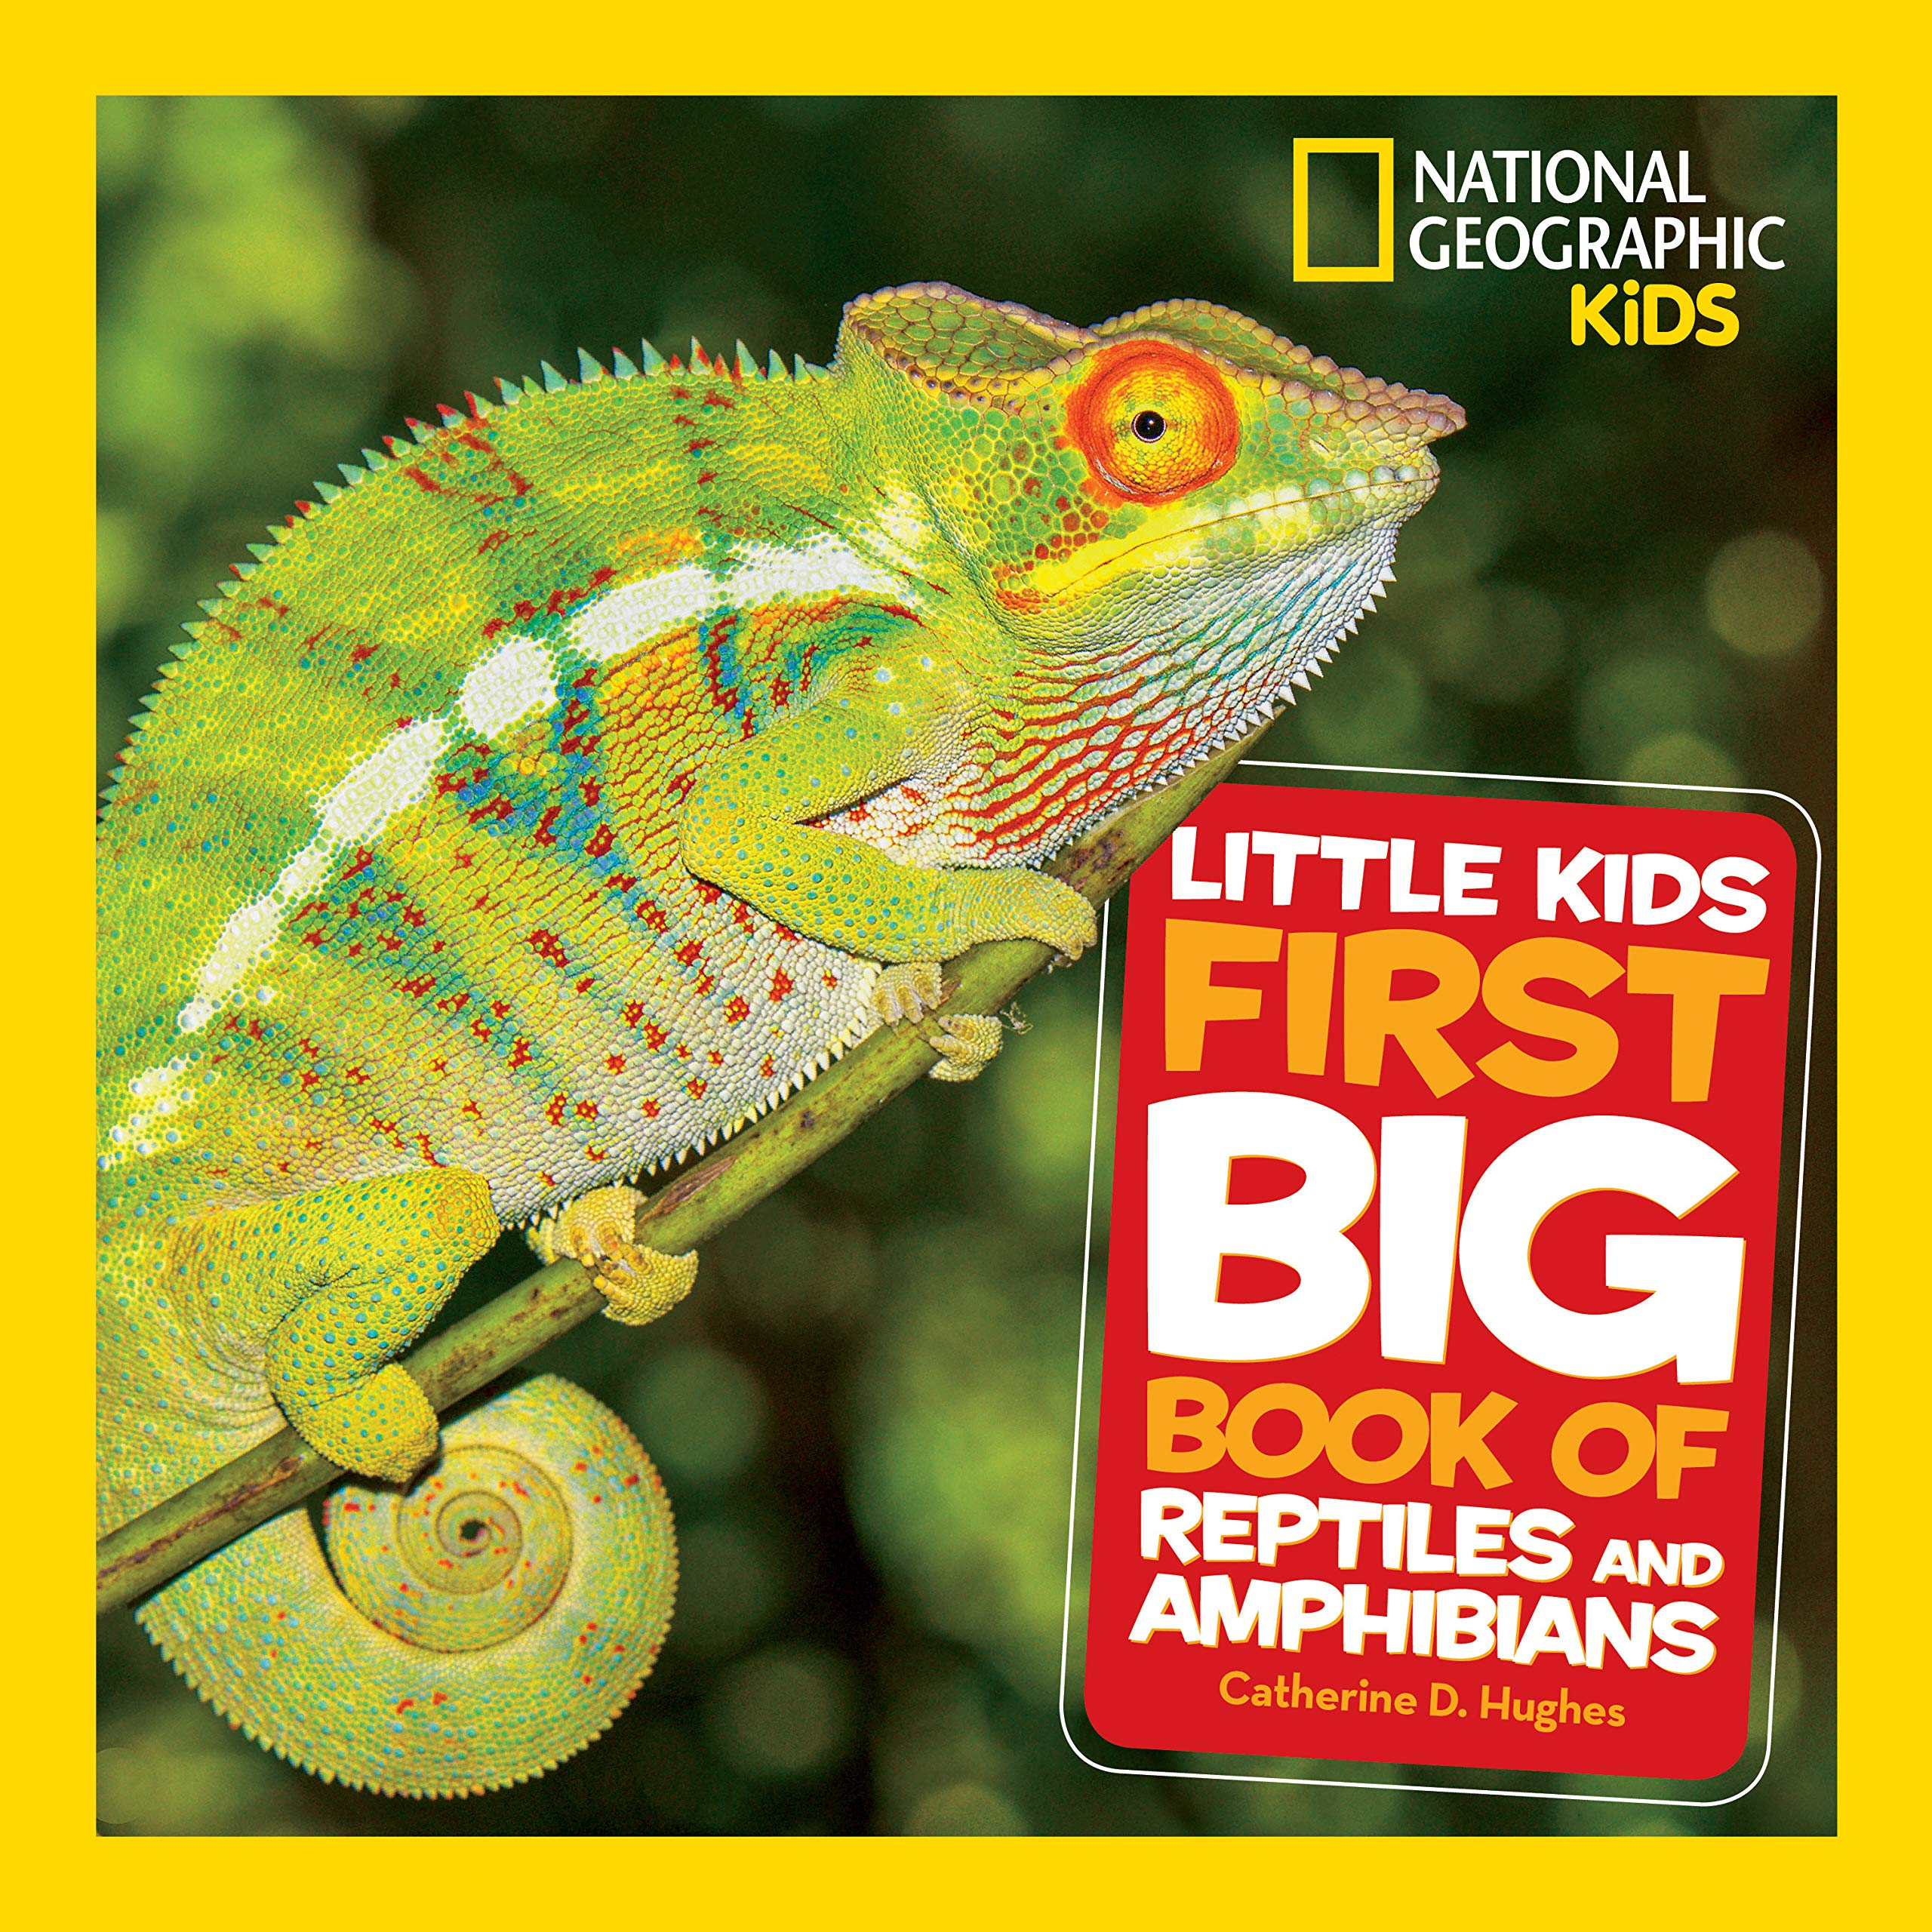 National Geographic Children's Books (September 8, 2020)